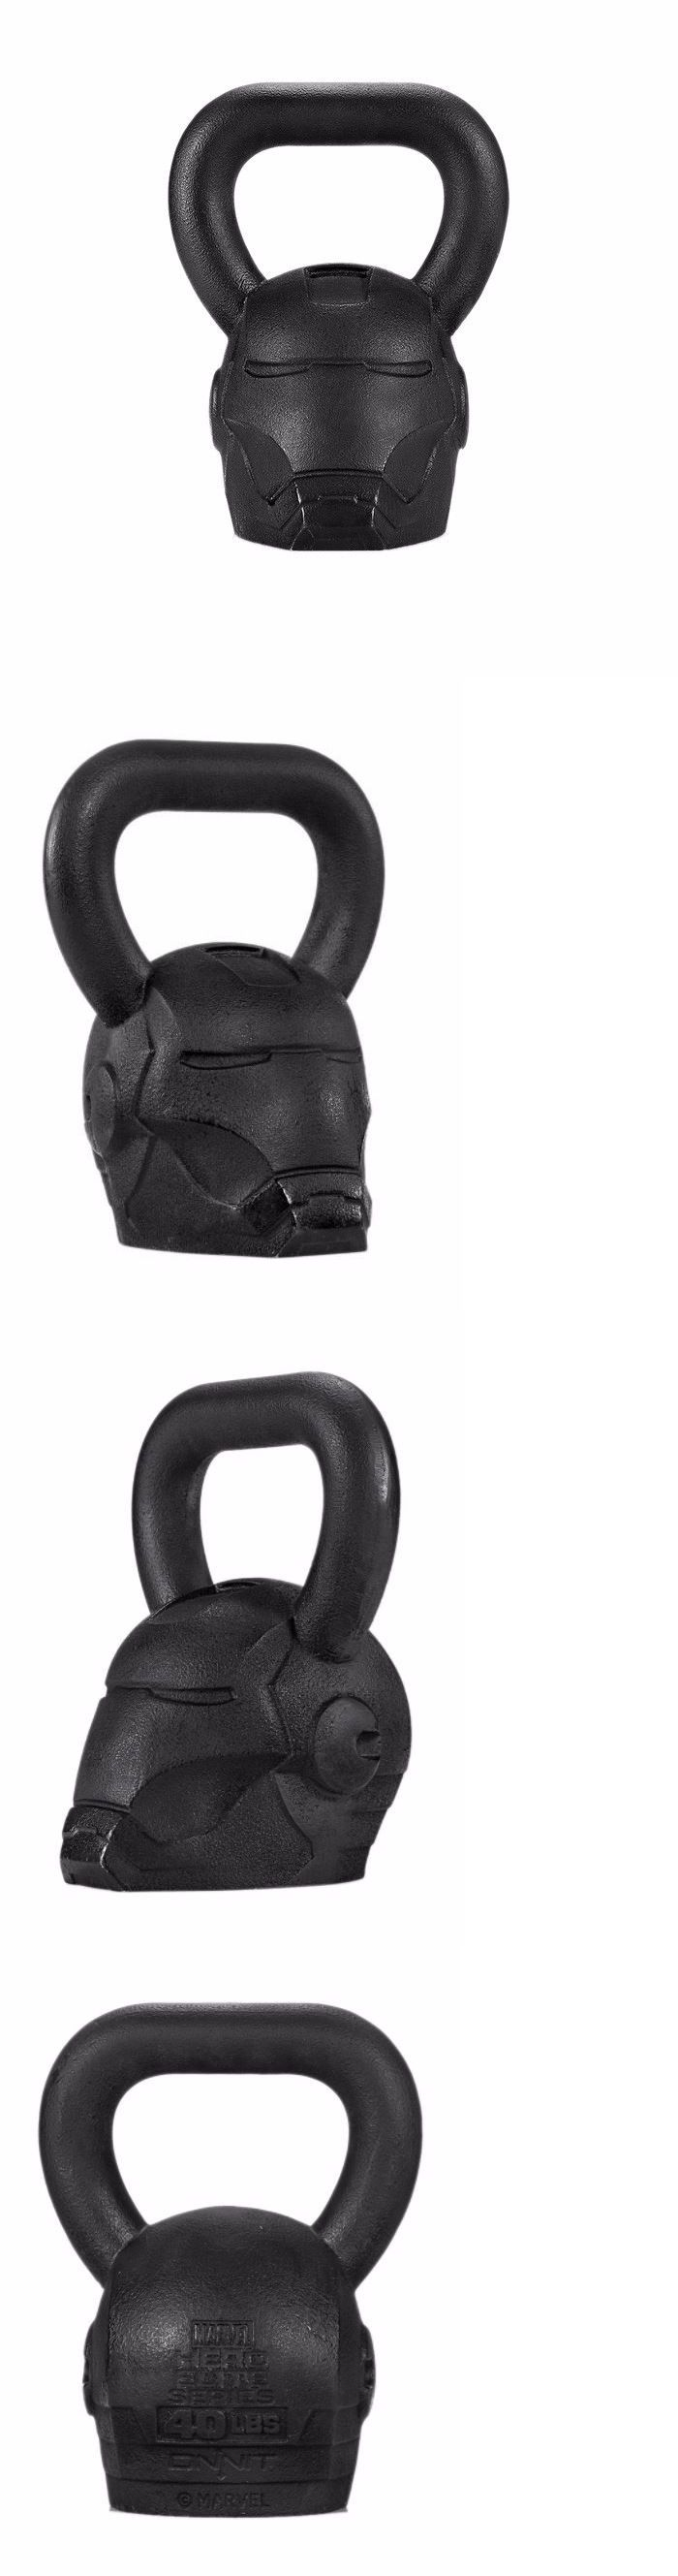 Kettlebells 179814: Workout Kettle Bell Marvel Super Hero Iron Man 40Lbs Solid Black -> BUY IT NOW ONLY: $189 on eBay!